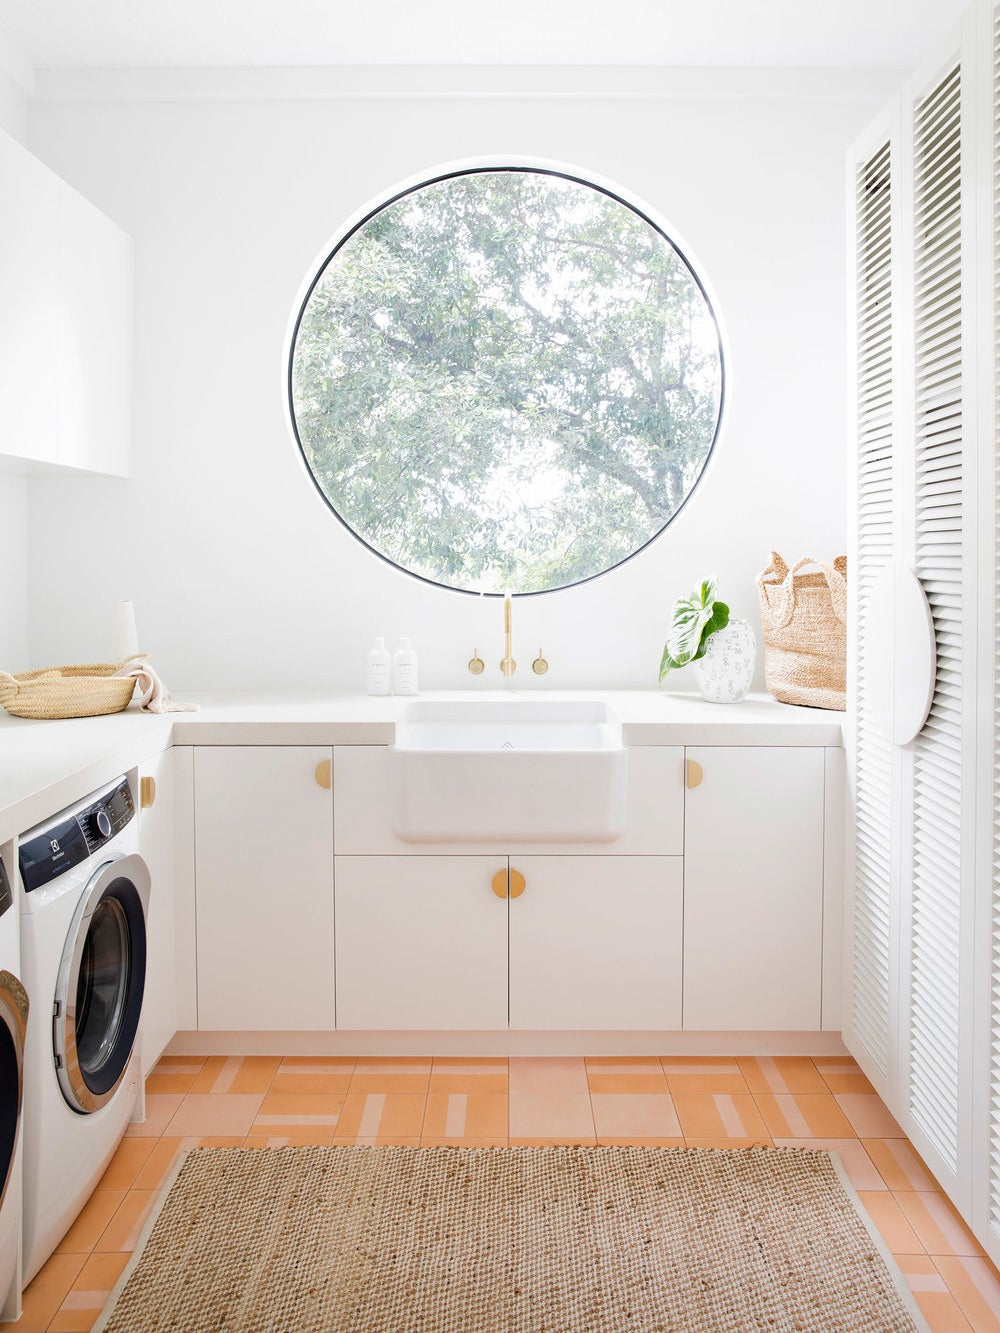 round window in a white laundry room with orange and pink tiles